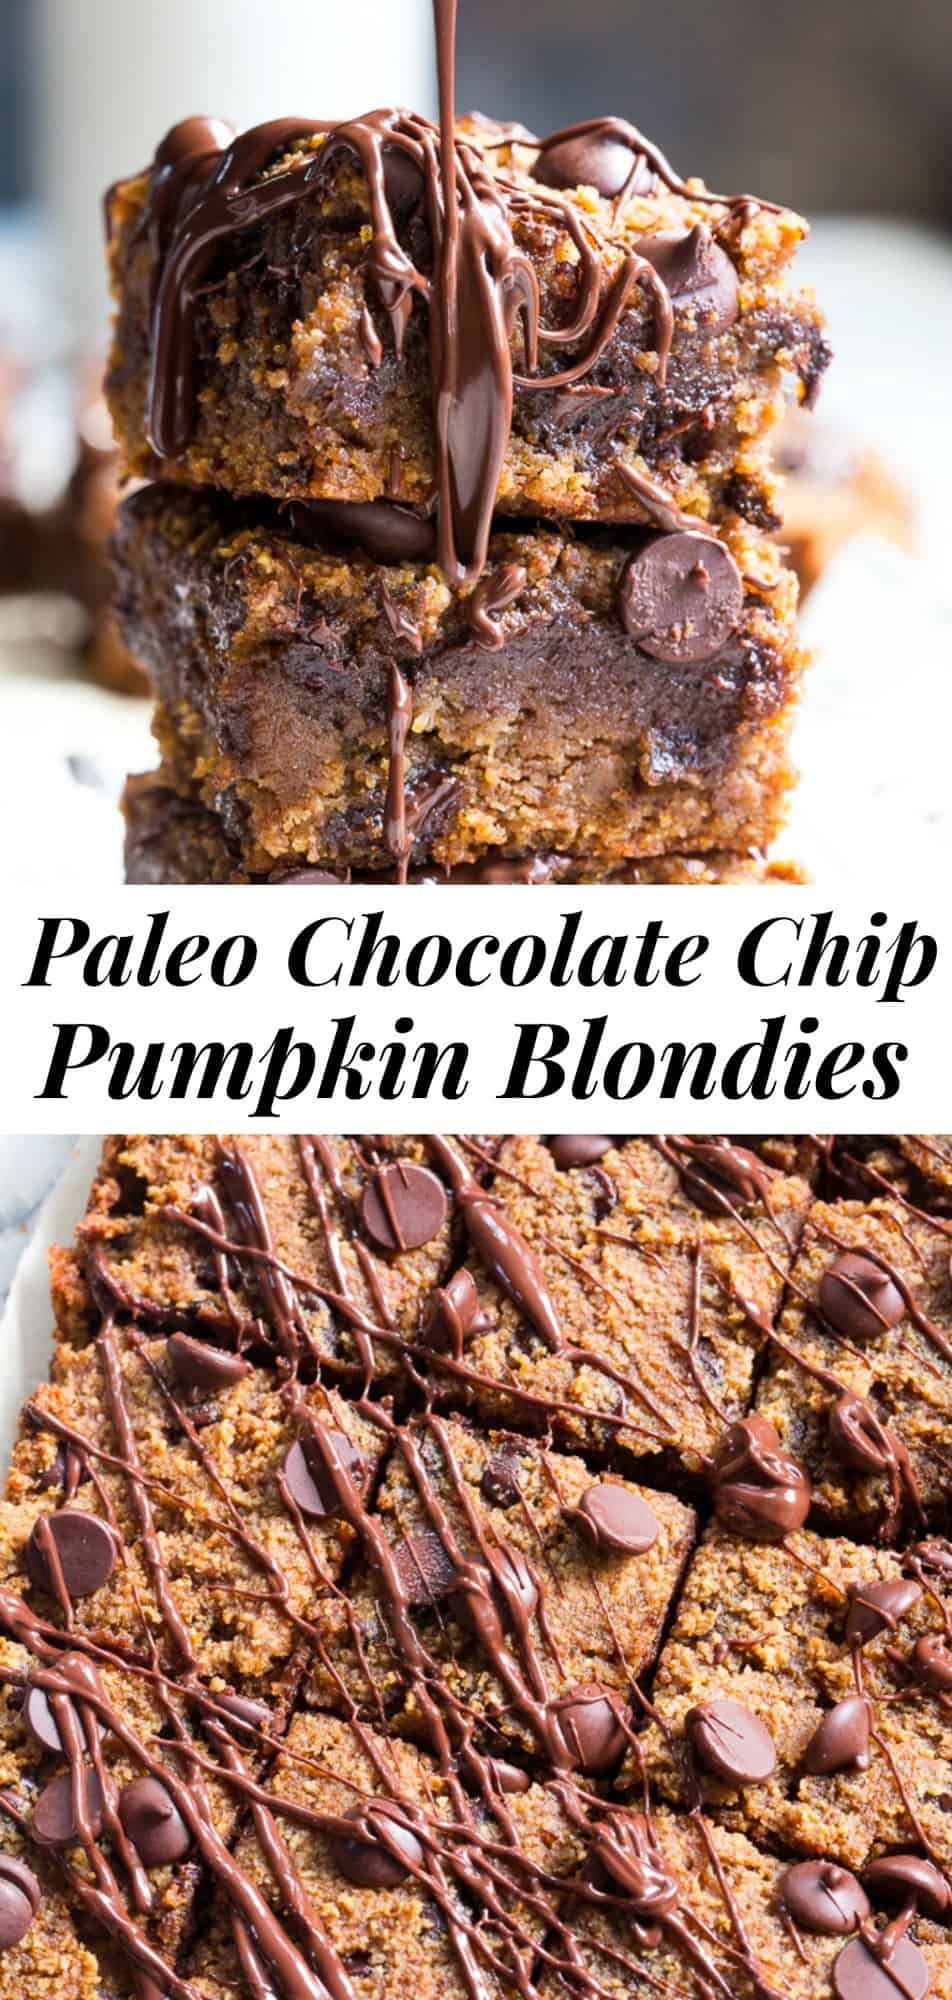 These fudgy Chocolate chip pumpkin blondies are a dream! They're chewy, sweet, packed with chocolate and warm spices. Family approved, perfect for fall baking or any time of year. A great healthy dessert that's kid friendly and easy to make. These addicting pumpkin blondies are paleo, dairy-free, and gluten-free. #paleo #cleaneating #glutenfree #pumpkin